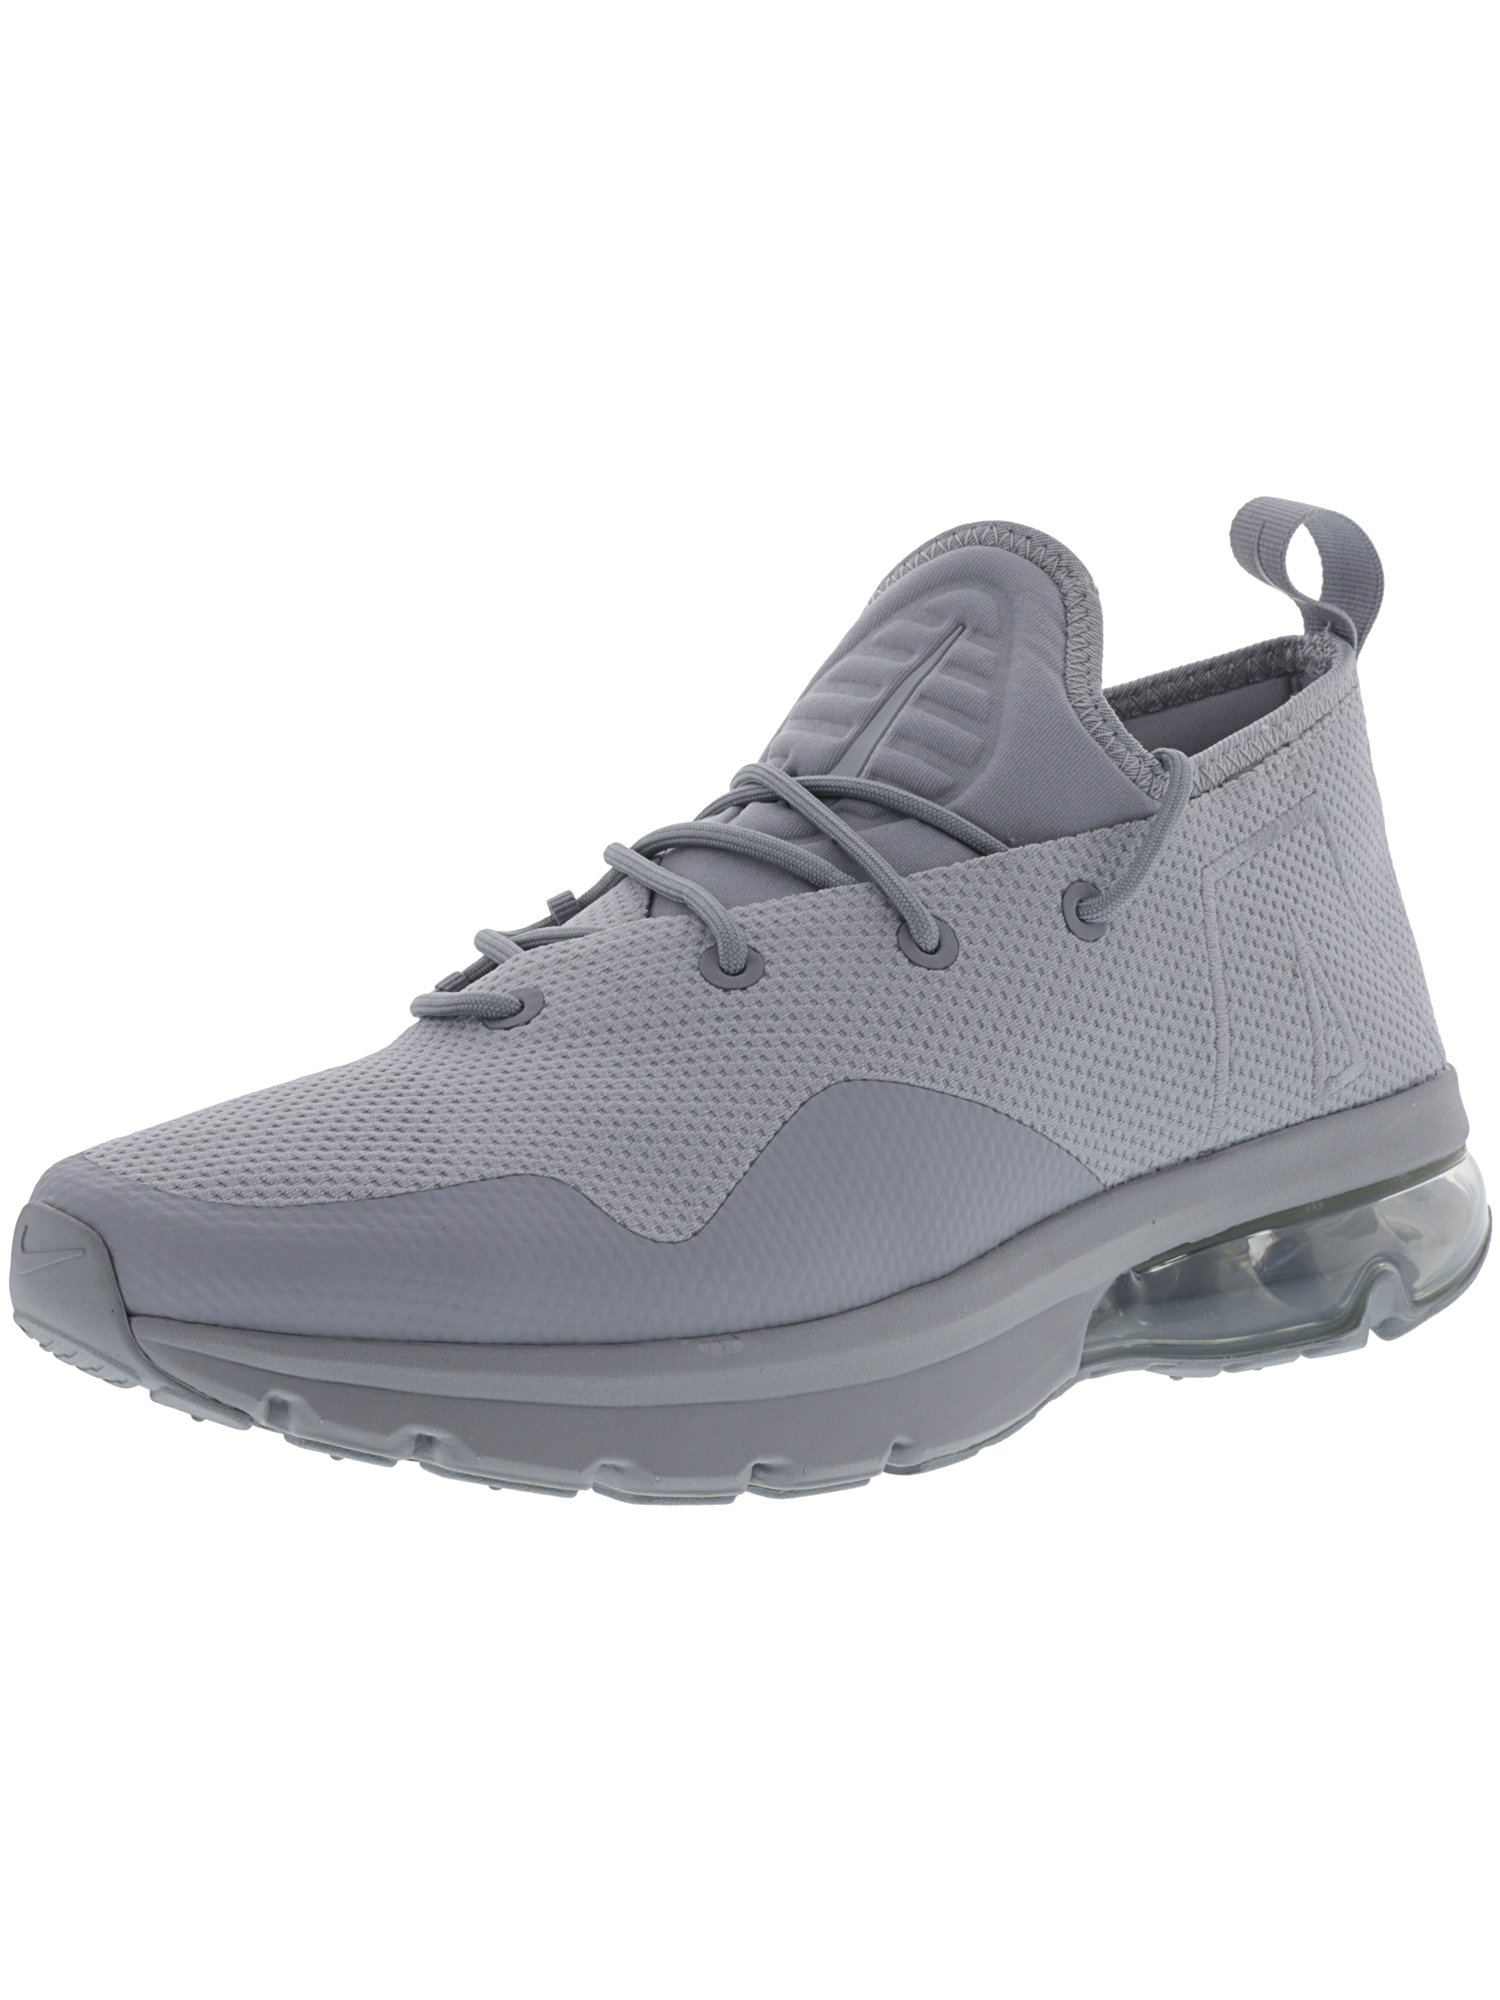 Nike Men's Air Max Flair 50 Wolf Grey / - Cool Ankle-High Running Shoe 8.5M